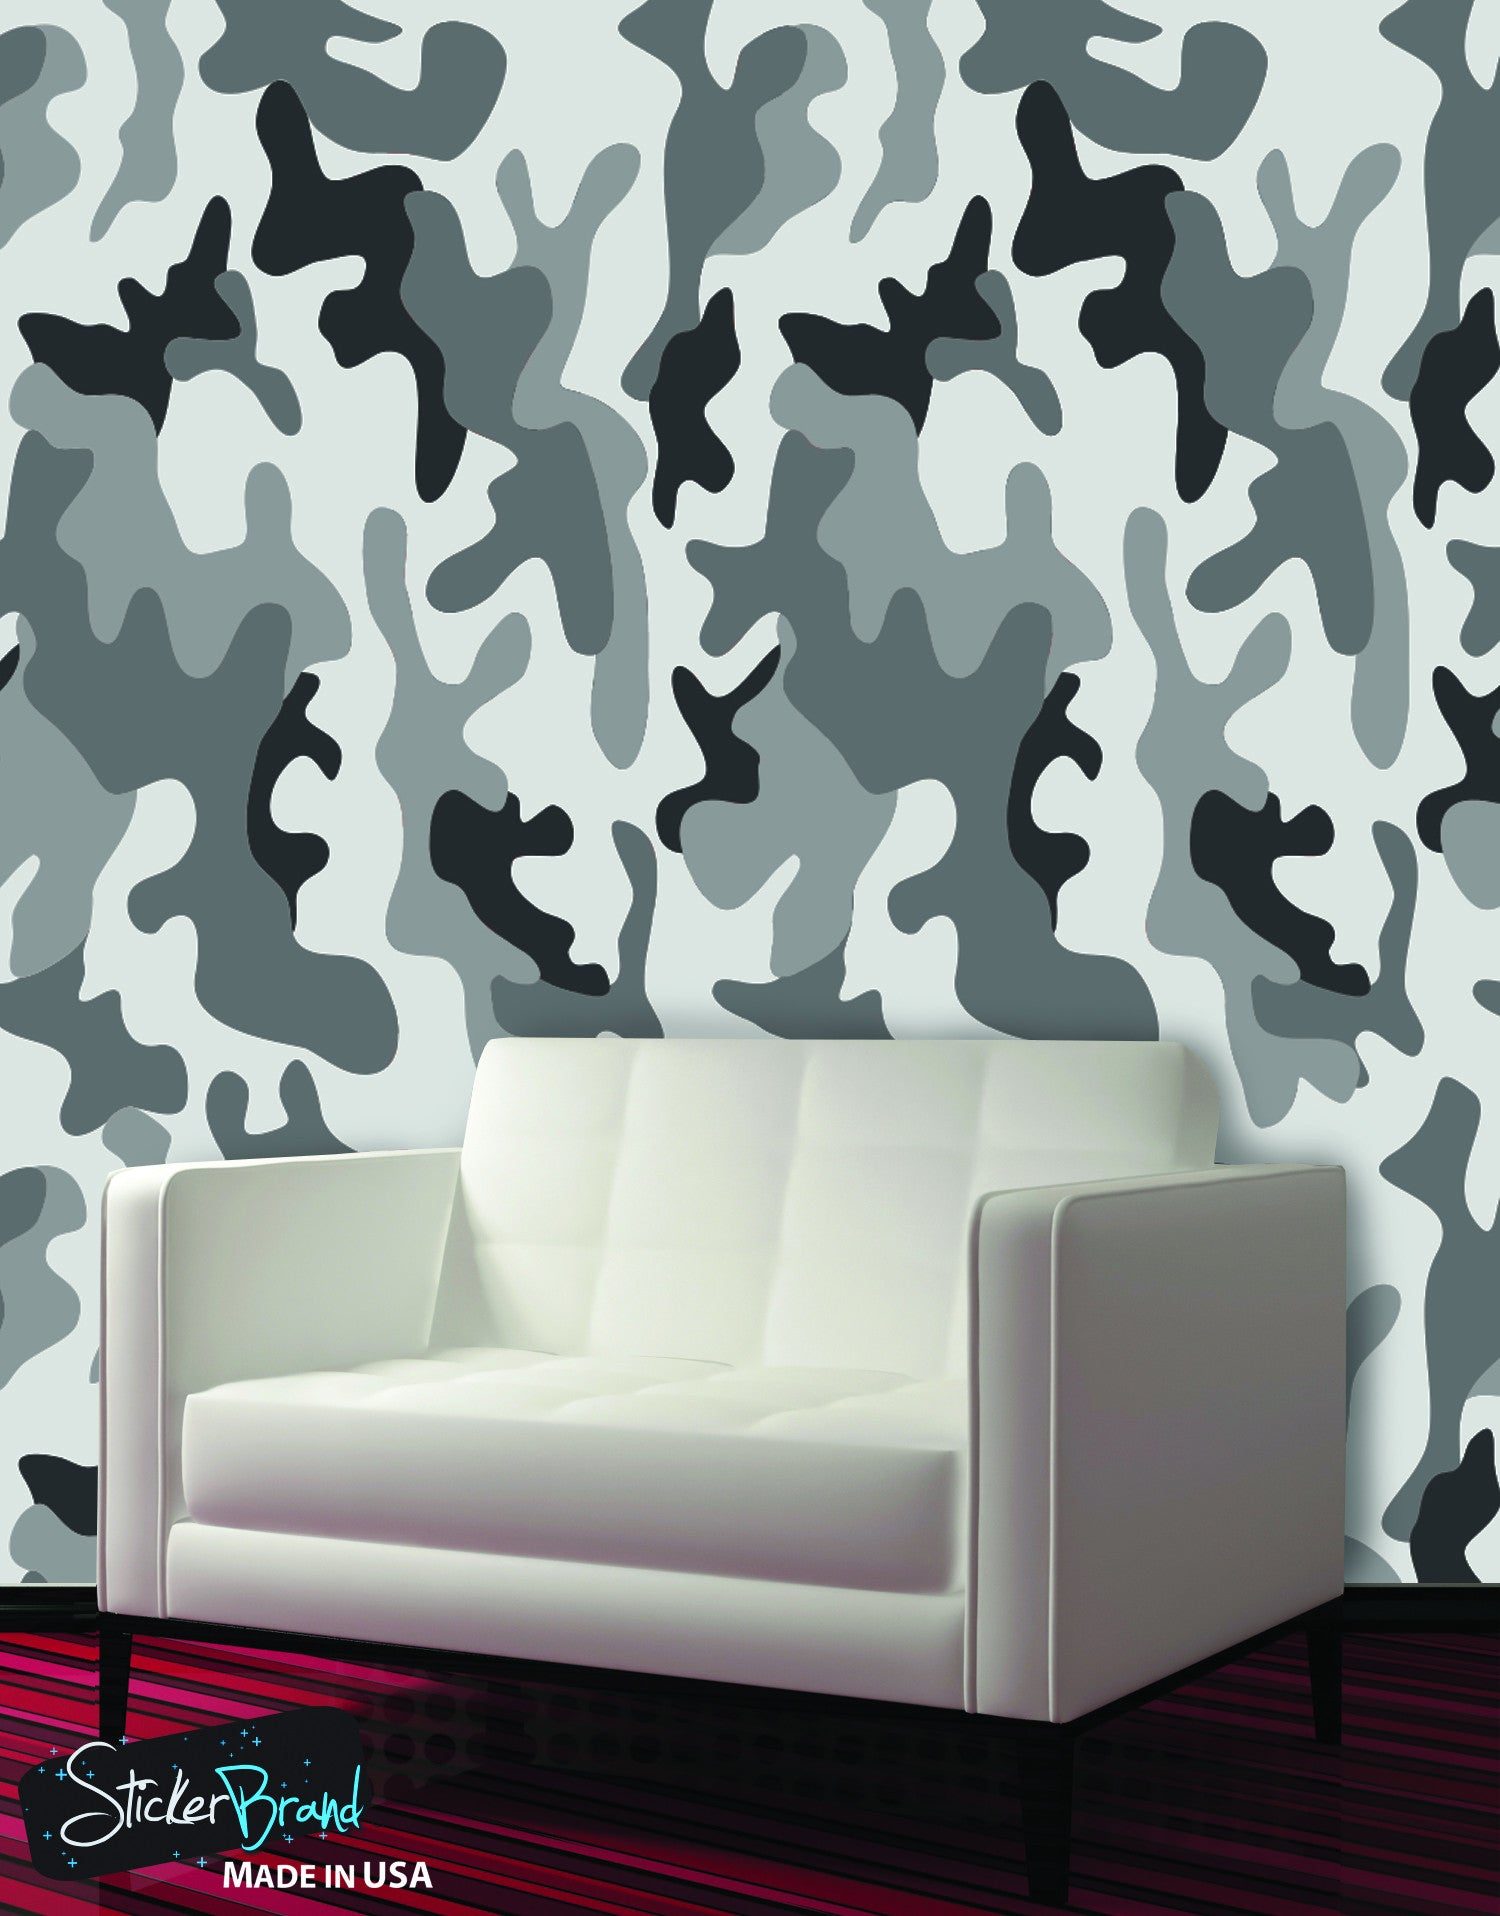 Urban gray military combat camo camouflage wall mural 6063 for Camo mural wall